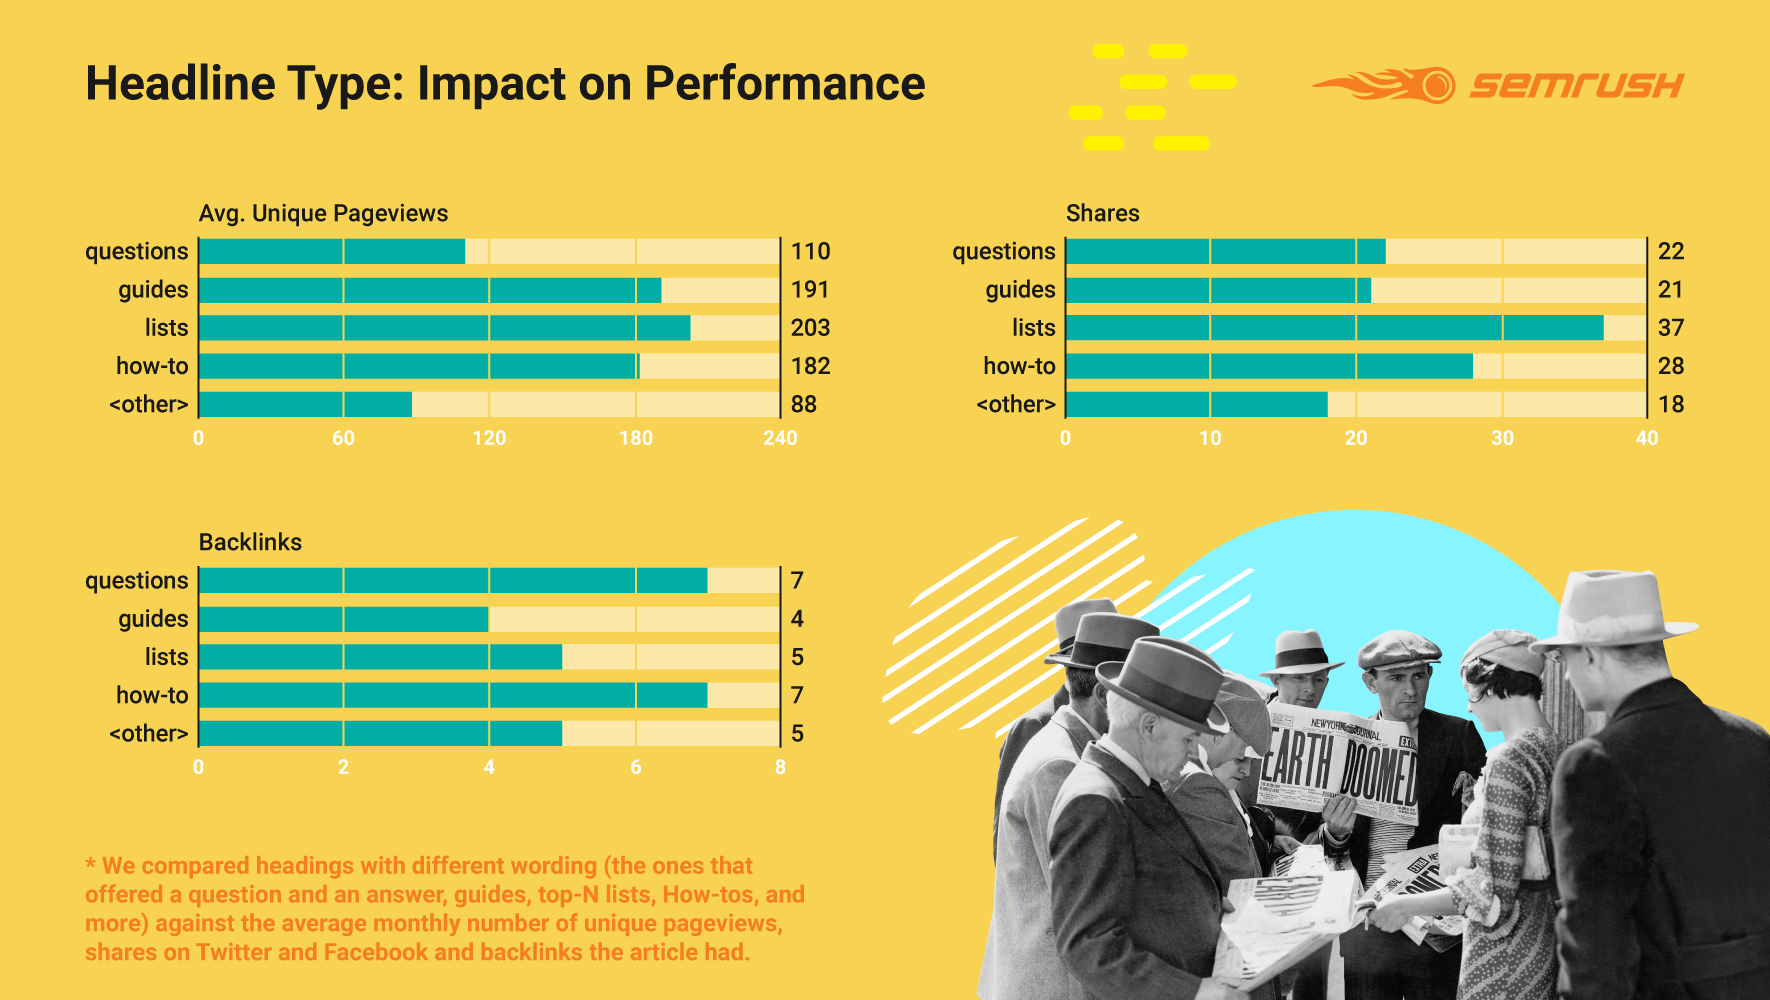 Headline Type Impact on Performance